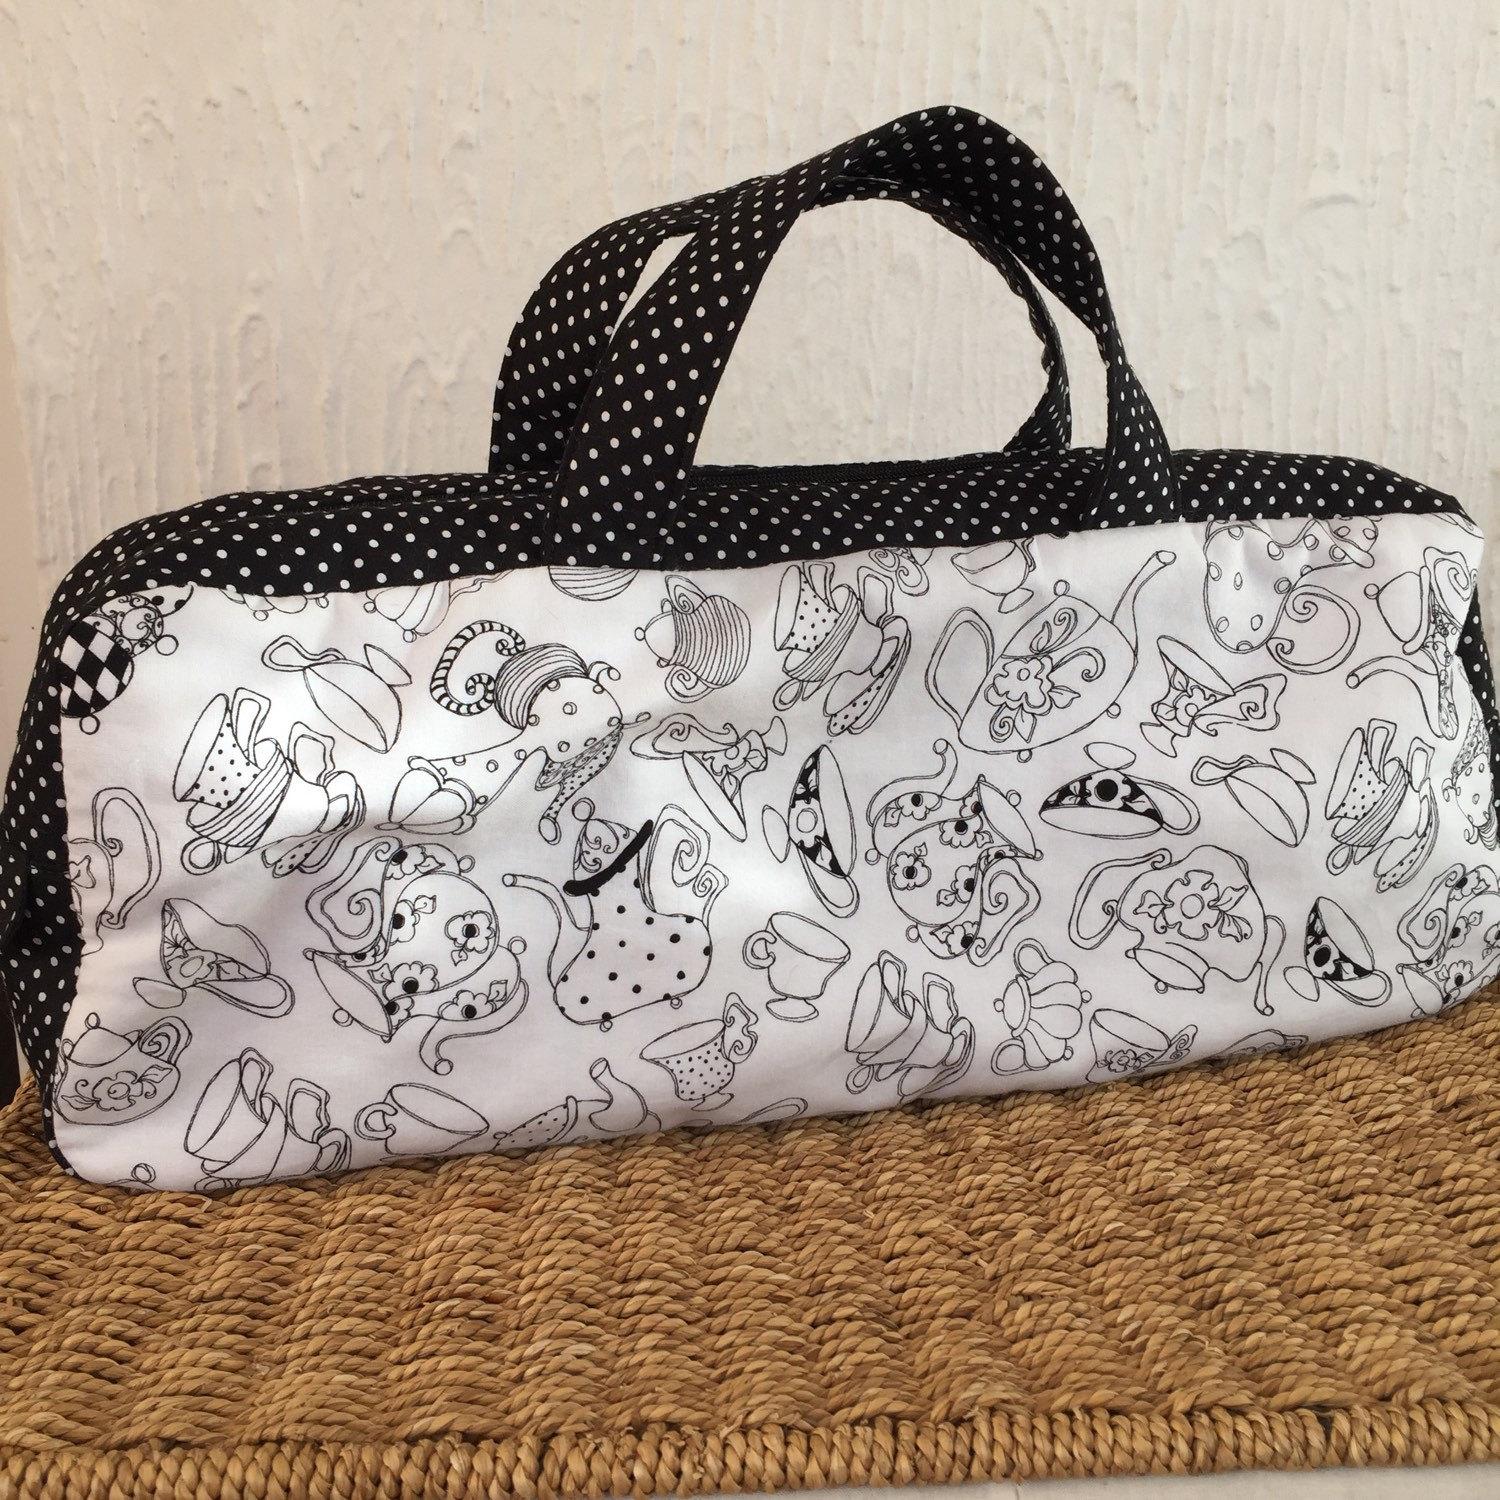 Tea cups and tea pots knitting bag with black and white spotty contrast